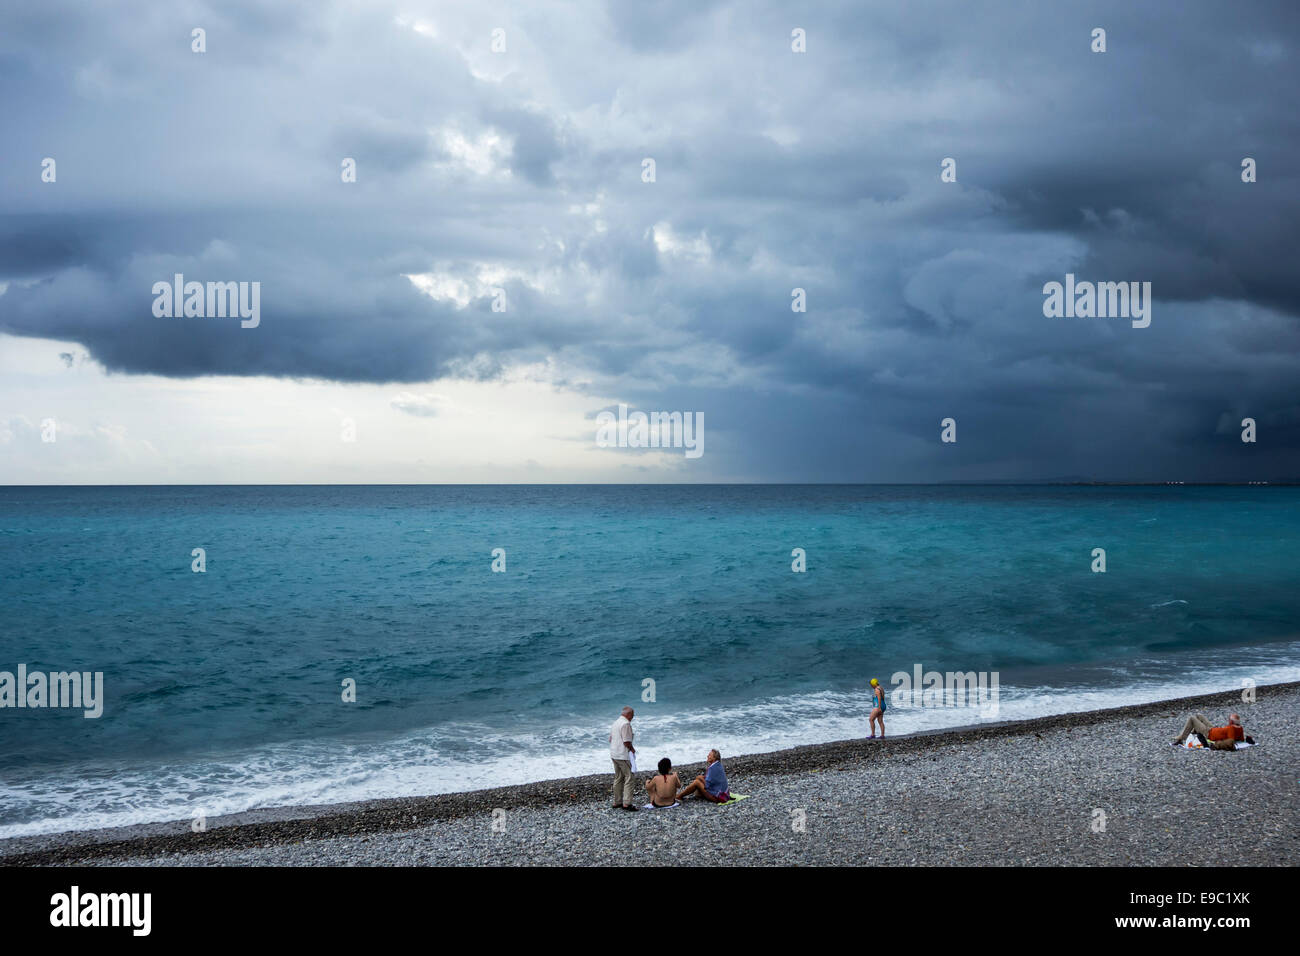 Female swimmers and sunbathers sitting on shingle beach during bad weather with rainstorm approaching over the sea - Stock Image